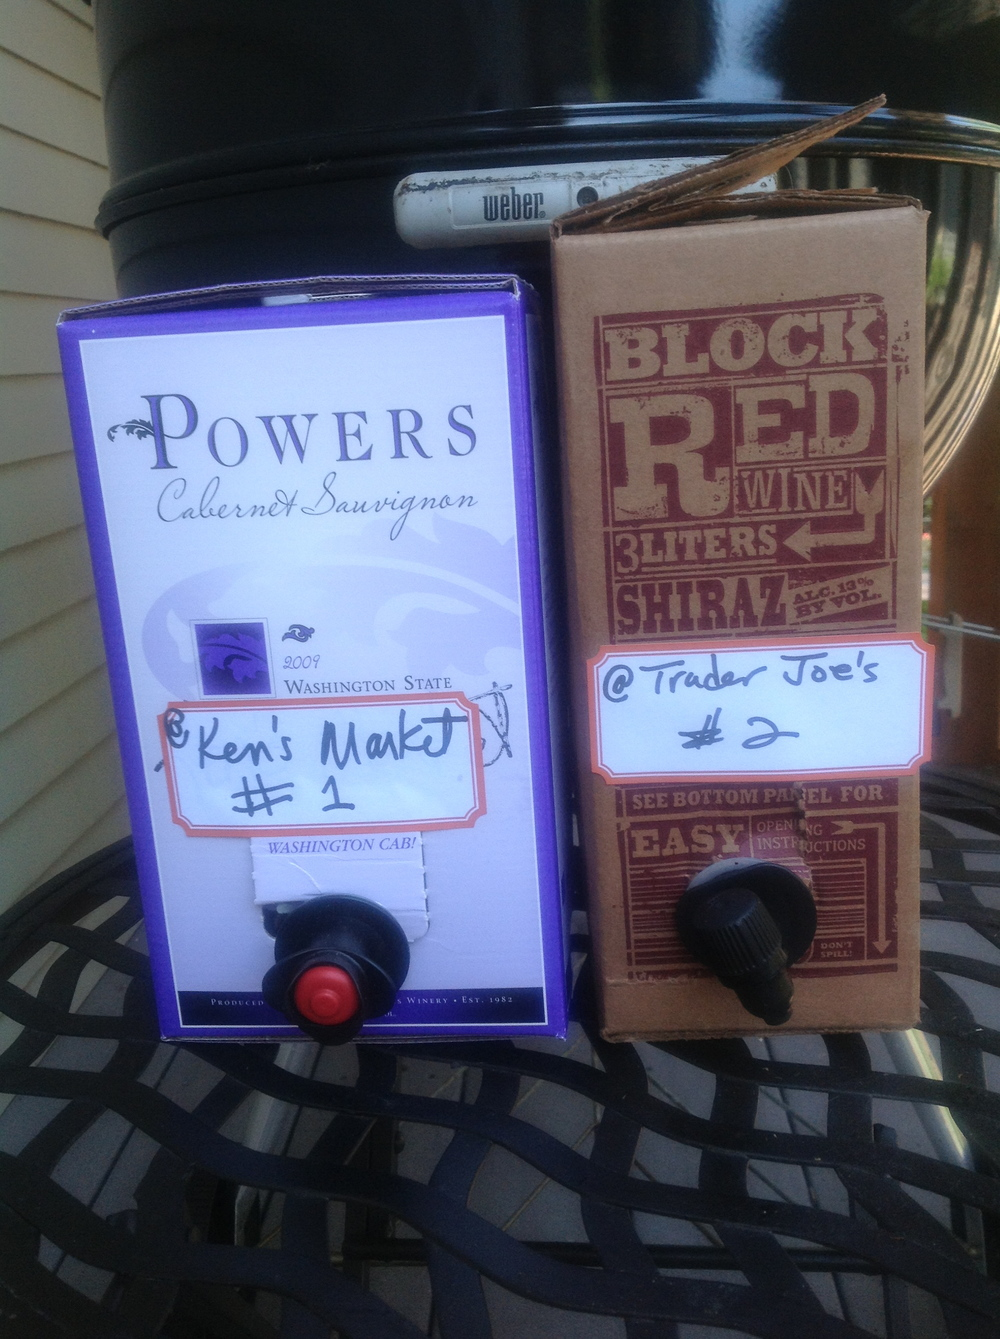 Powers Cab Sav and Block Red Shiraz